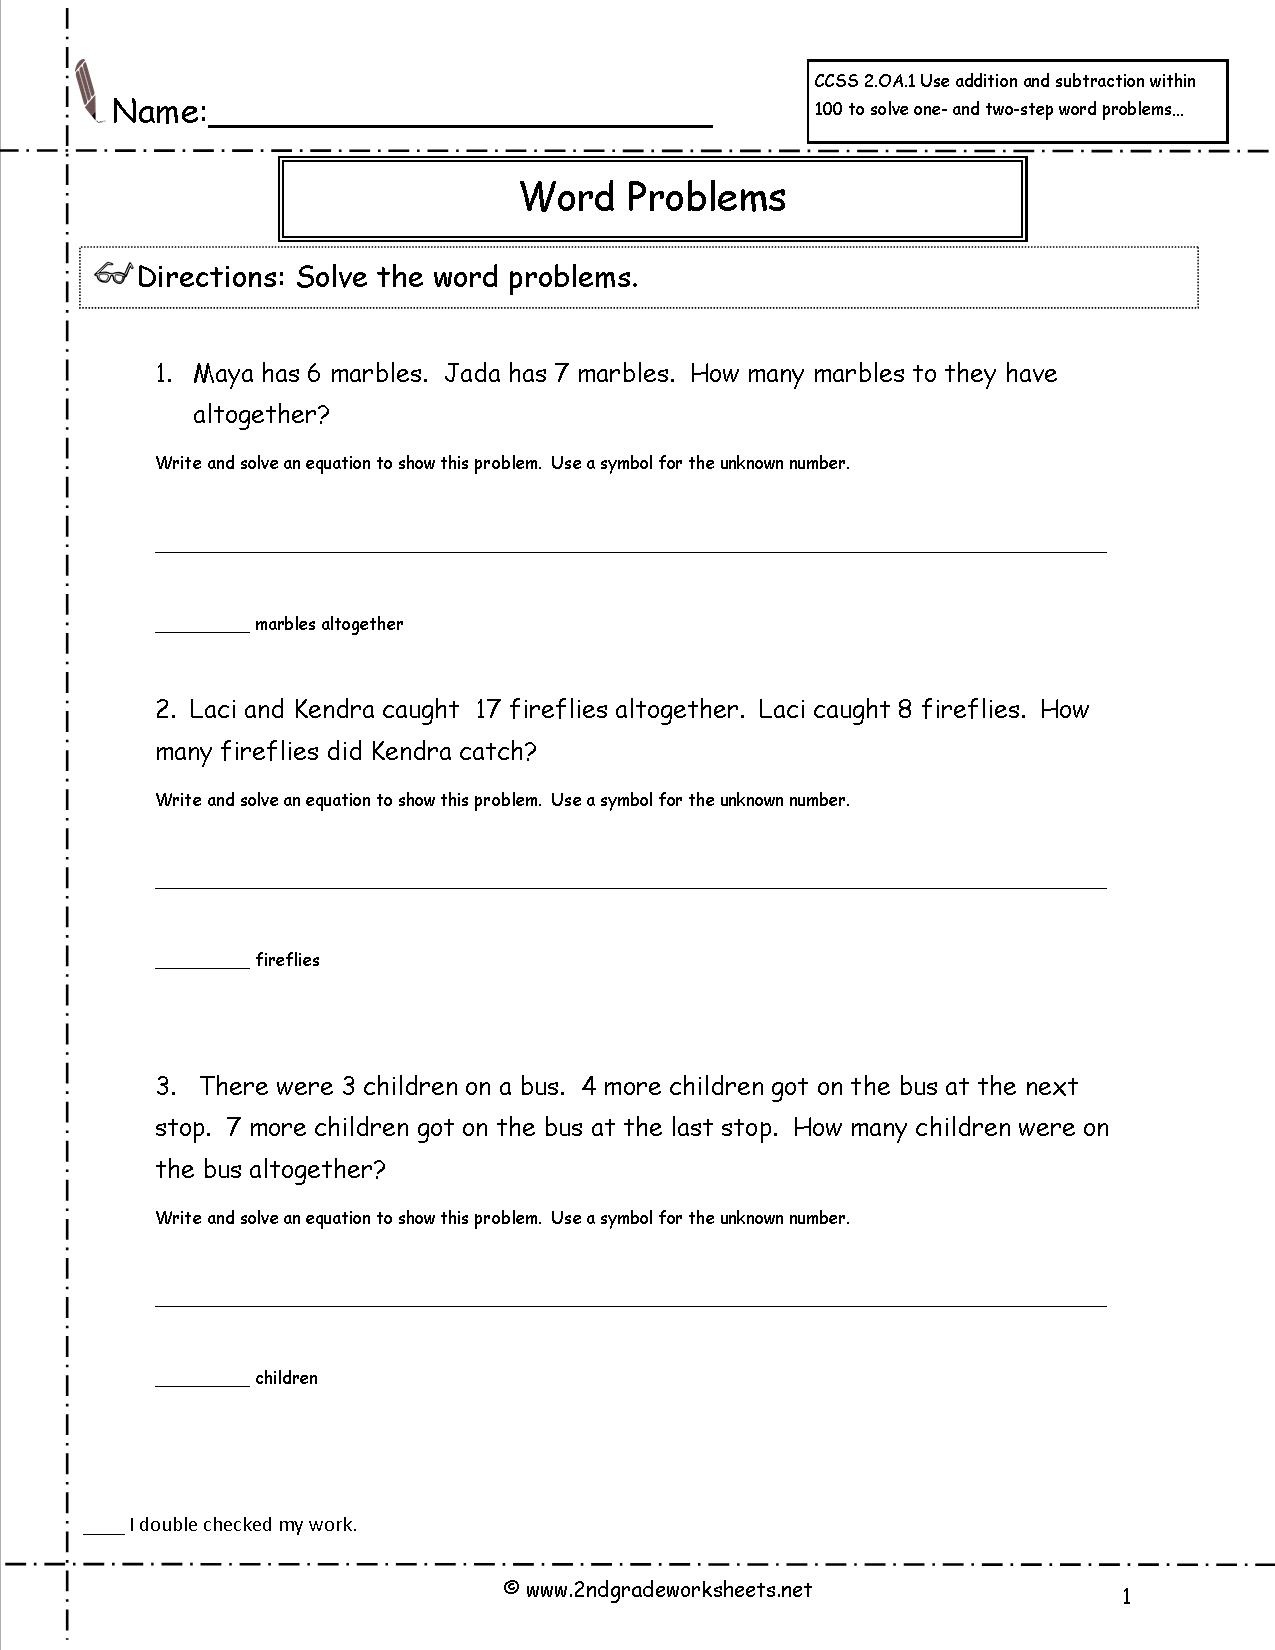 Free Printable Math Word Problems For 2nd Grade